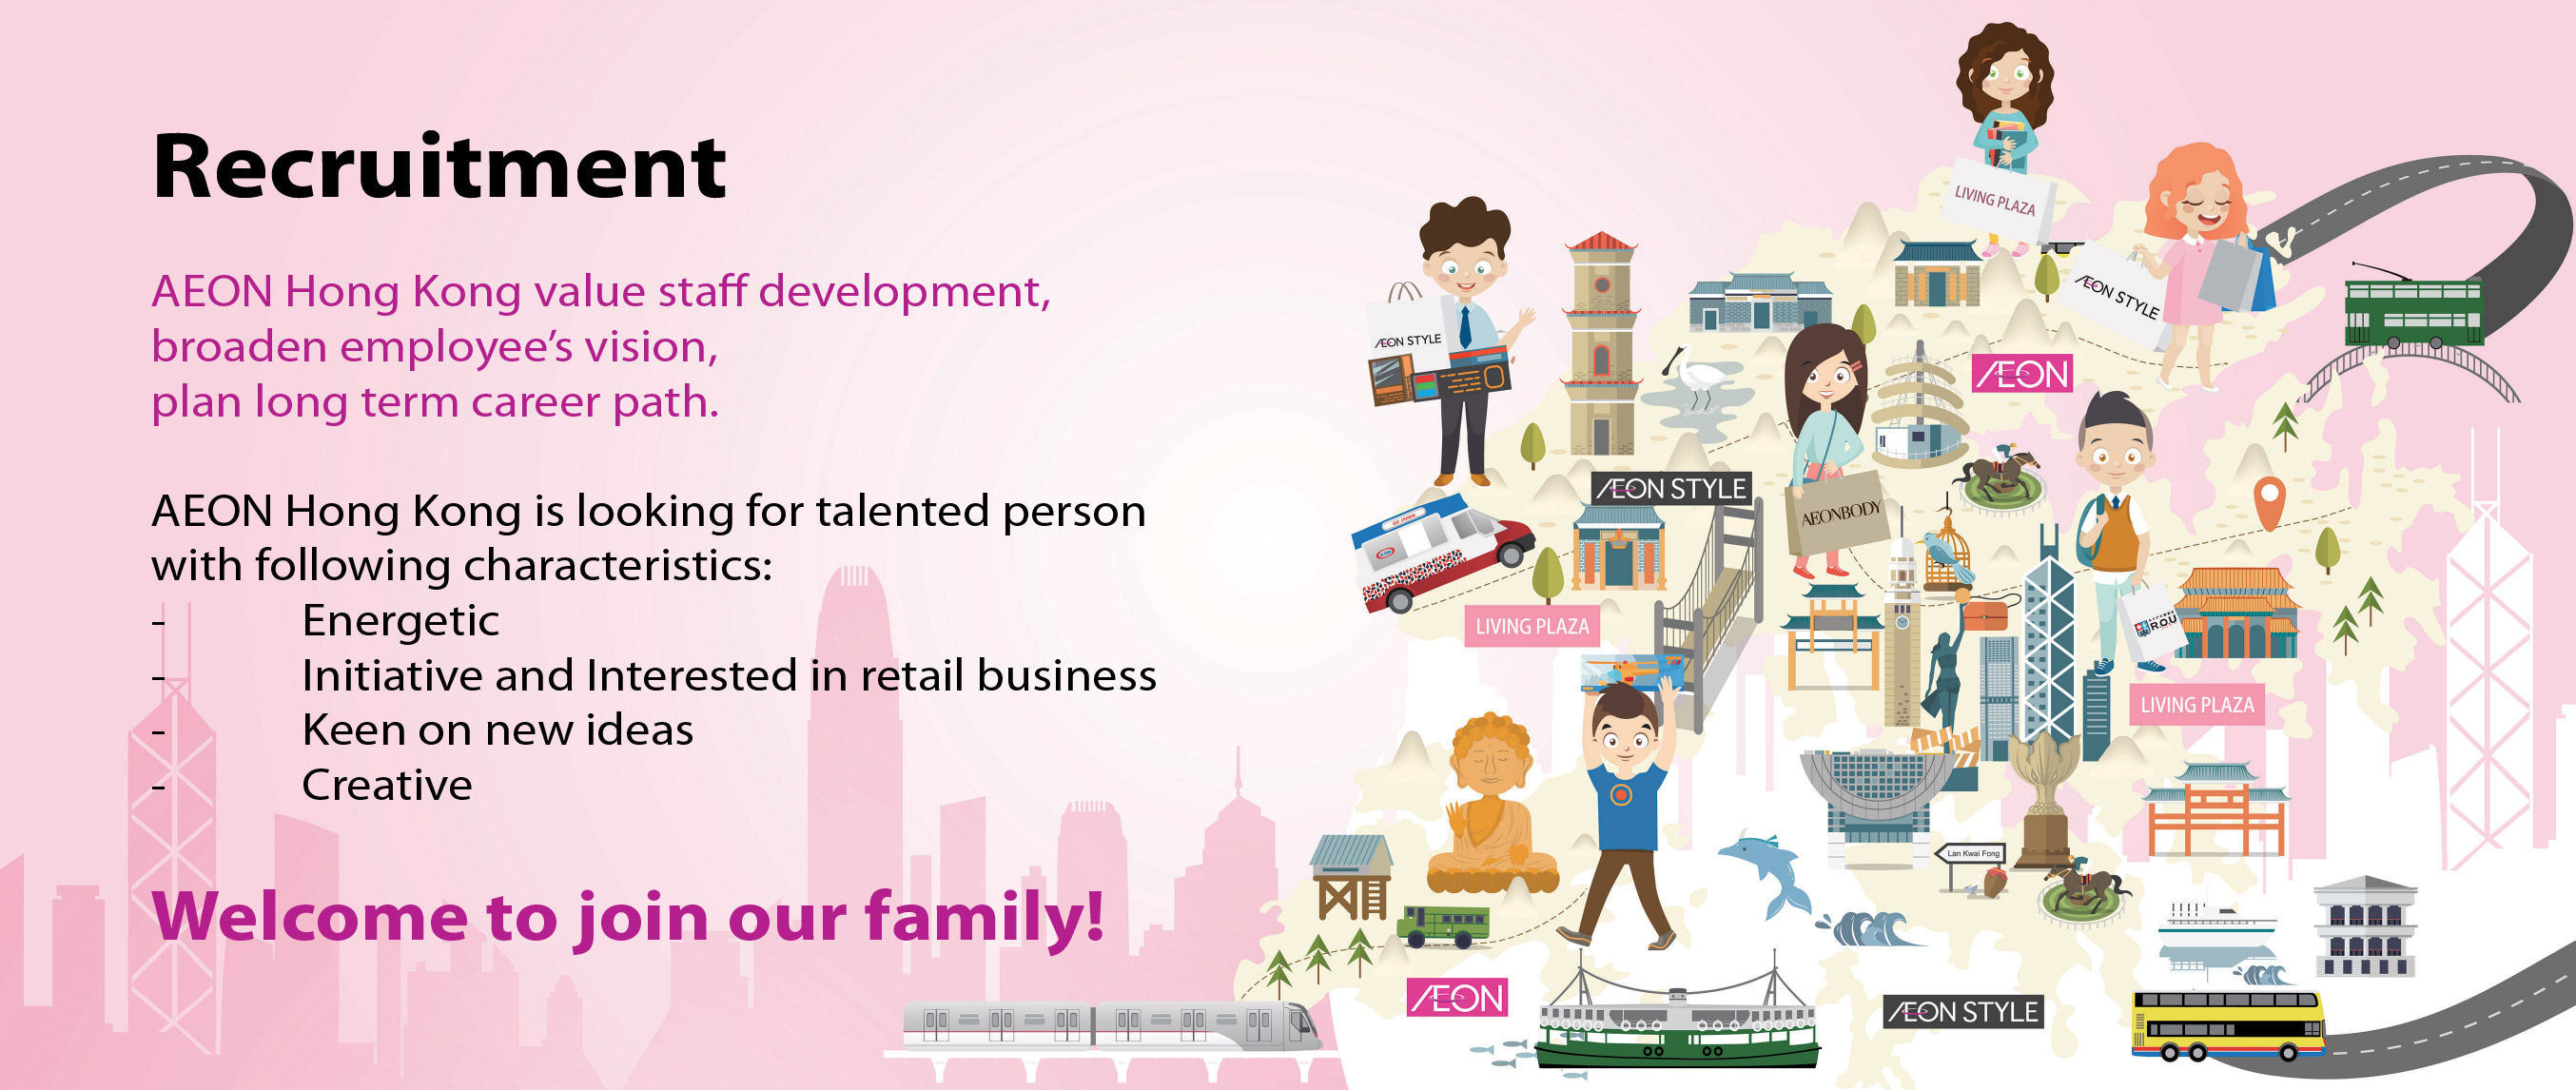 Recruitment AEON Hong Kong value staff development, broaden employees'vision, plan long term career path. AEON Hong Kong is looking for talented person with following characteristics:-Energetic -Initiative and Interested in retail business -Keen on new ideas -Creative Welcome to join us!